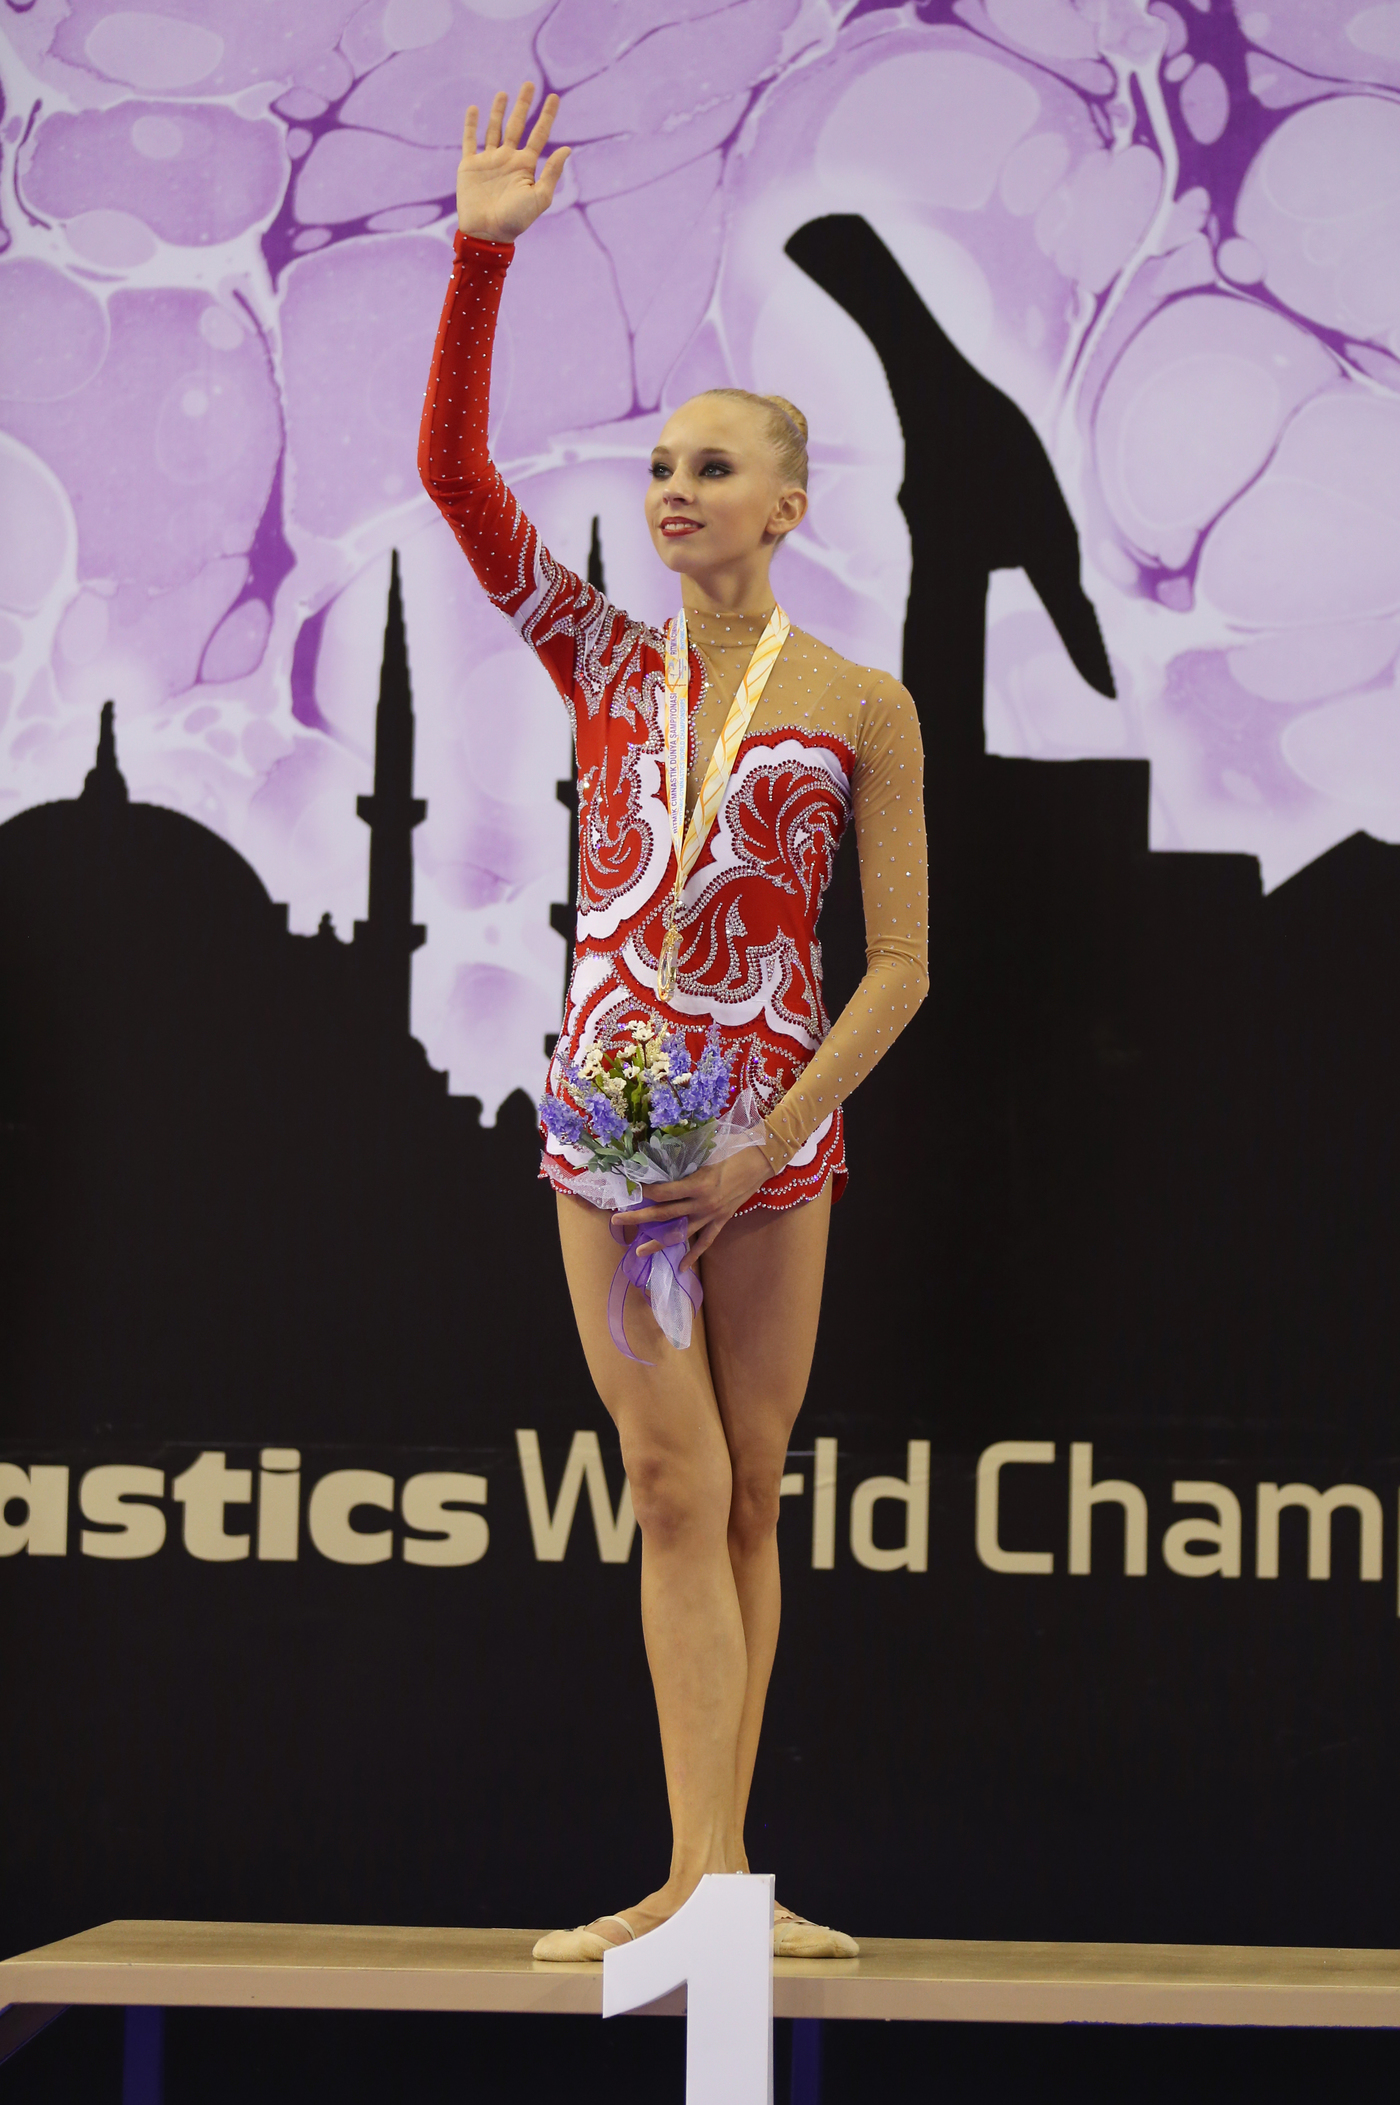 Longines Gymnastics Event: The Longines Prize for Elegance awarded to Yana Kudryavtseva at the 33rd Rhythmic Gymnastics World Championships 2014 in Izmir 4